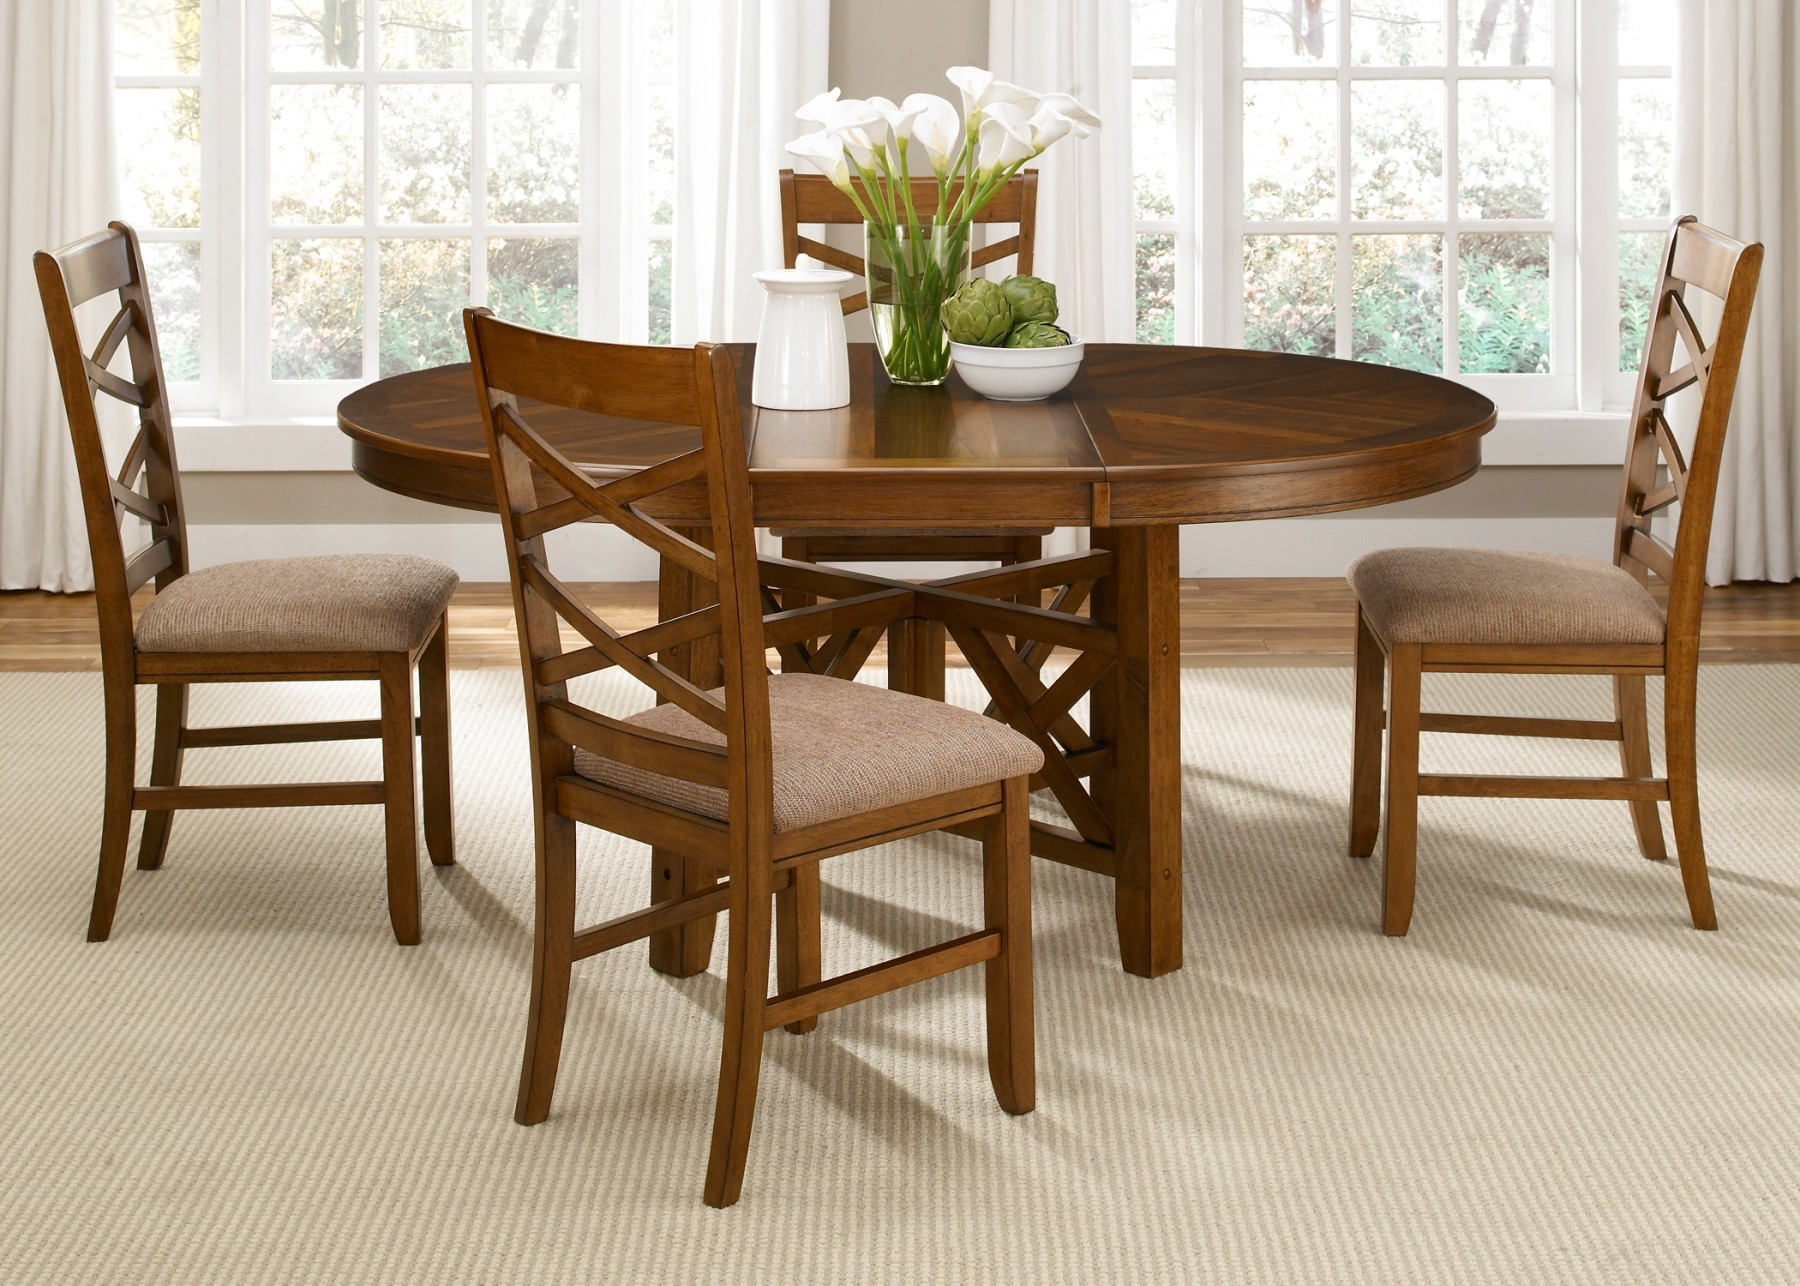 Bistro Oval Extendable Pedestal Dining Room Set From